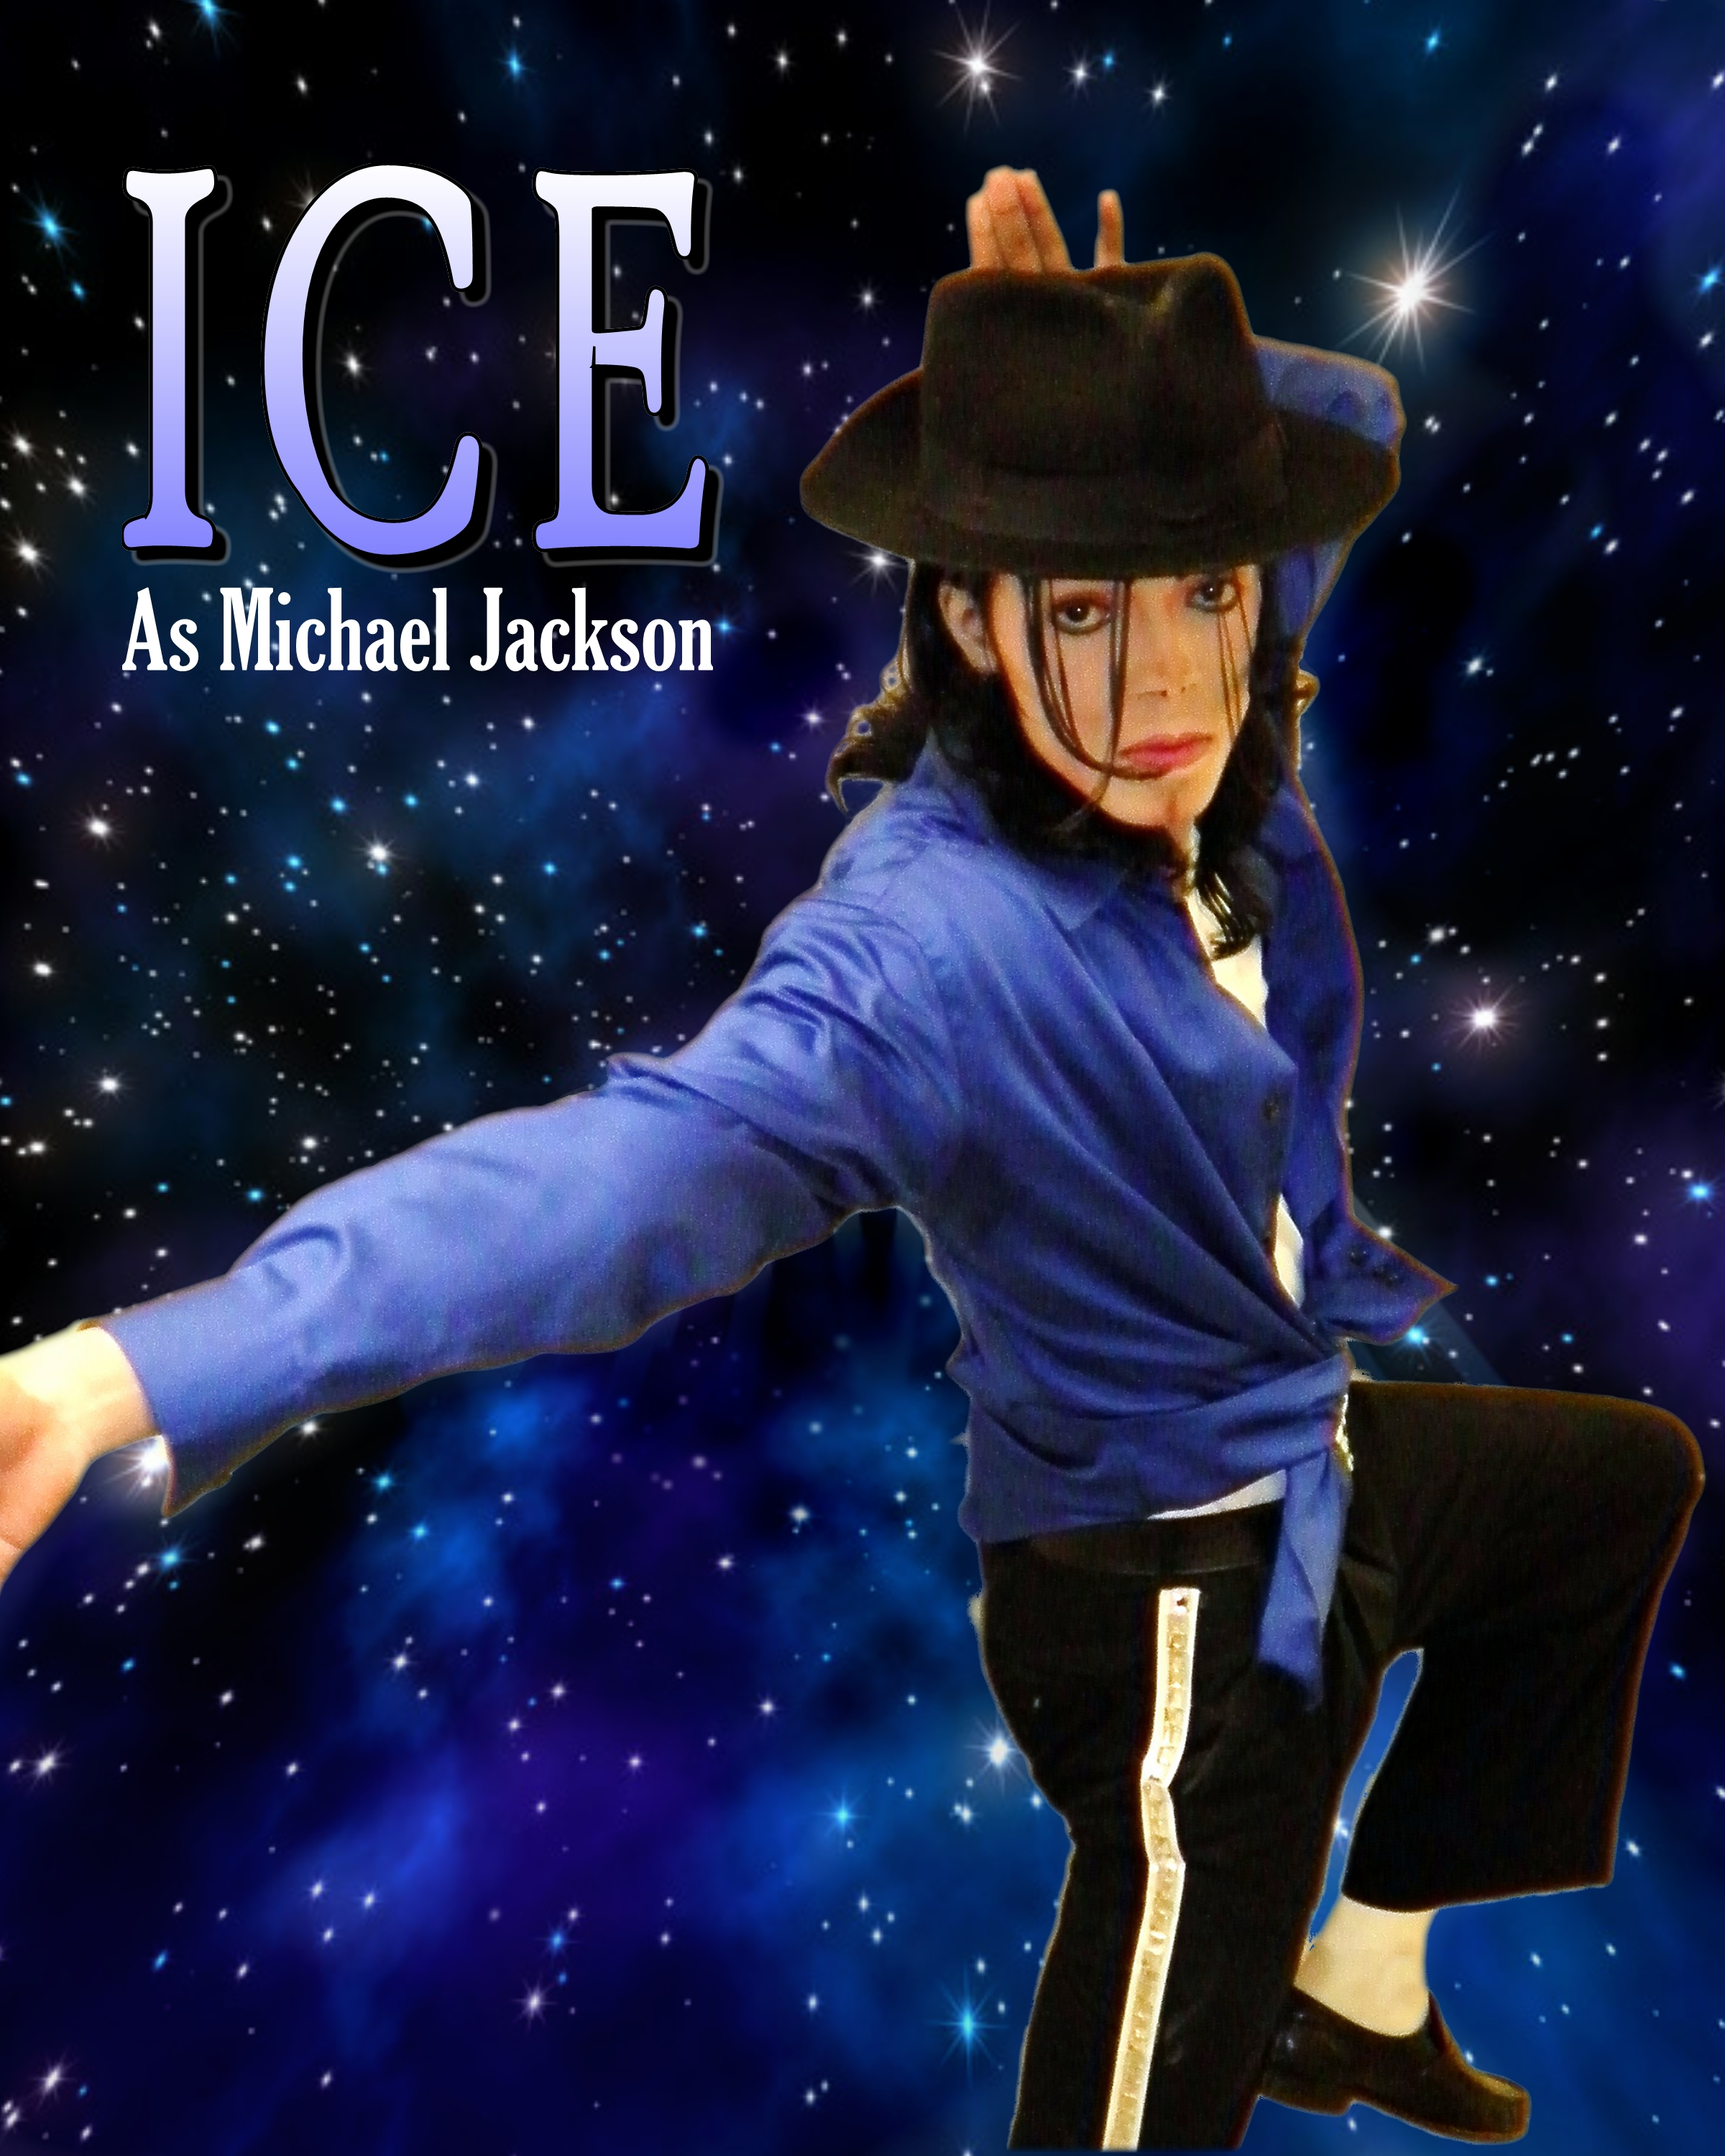 Ice as Michael Jackson